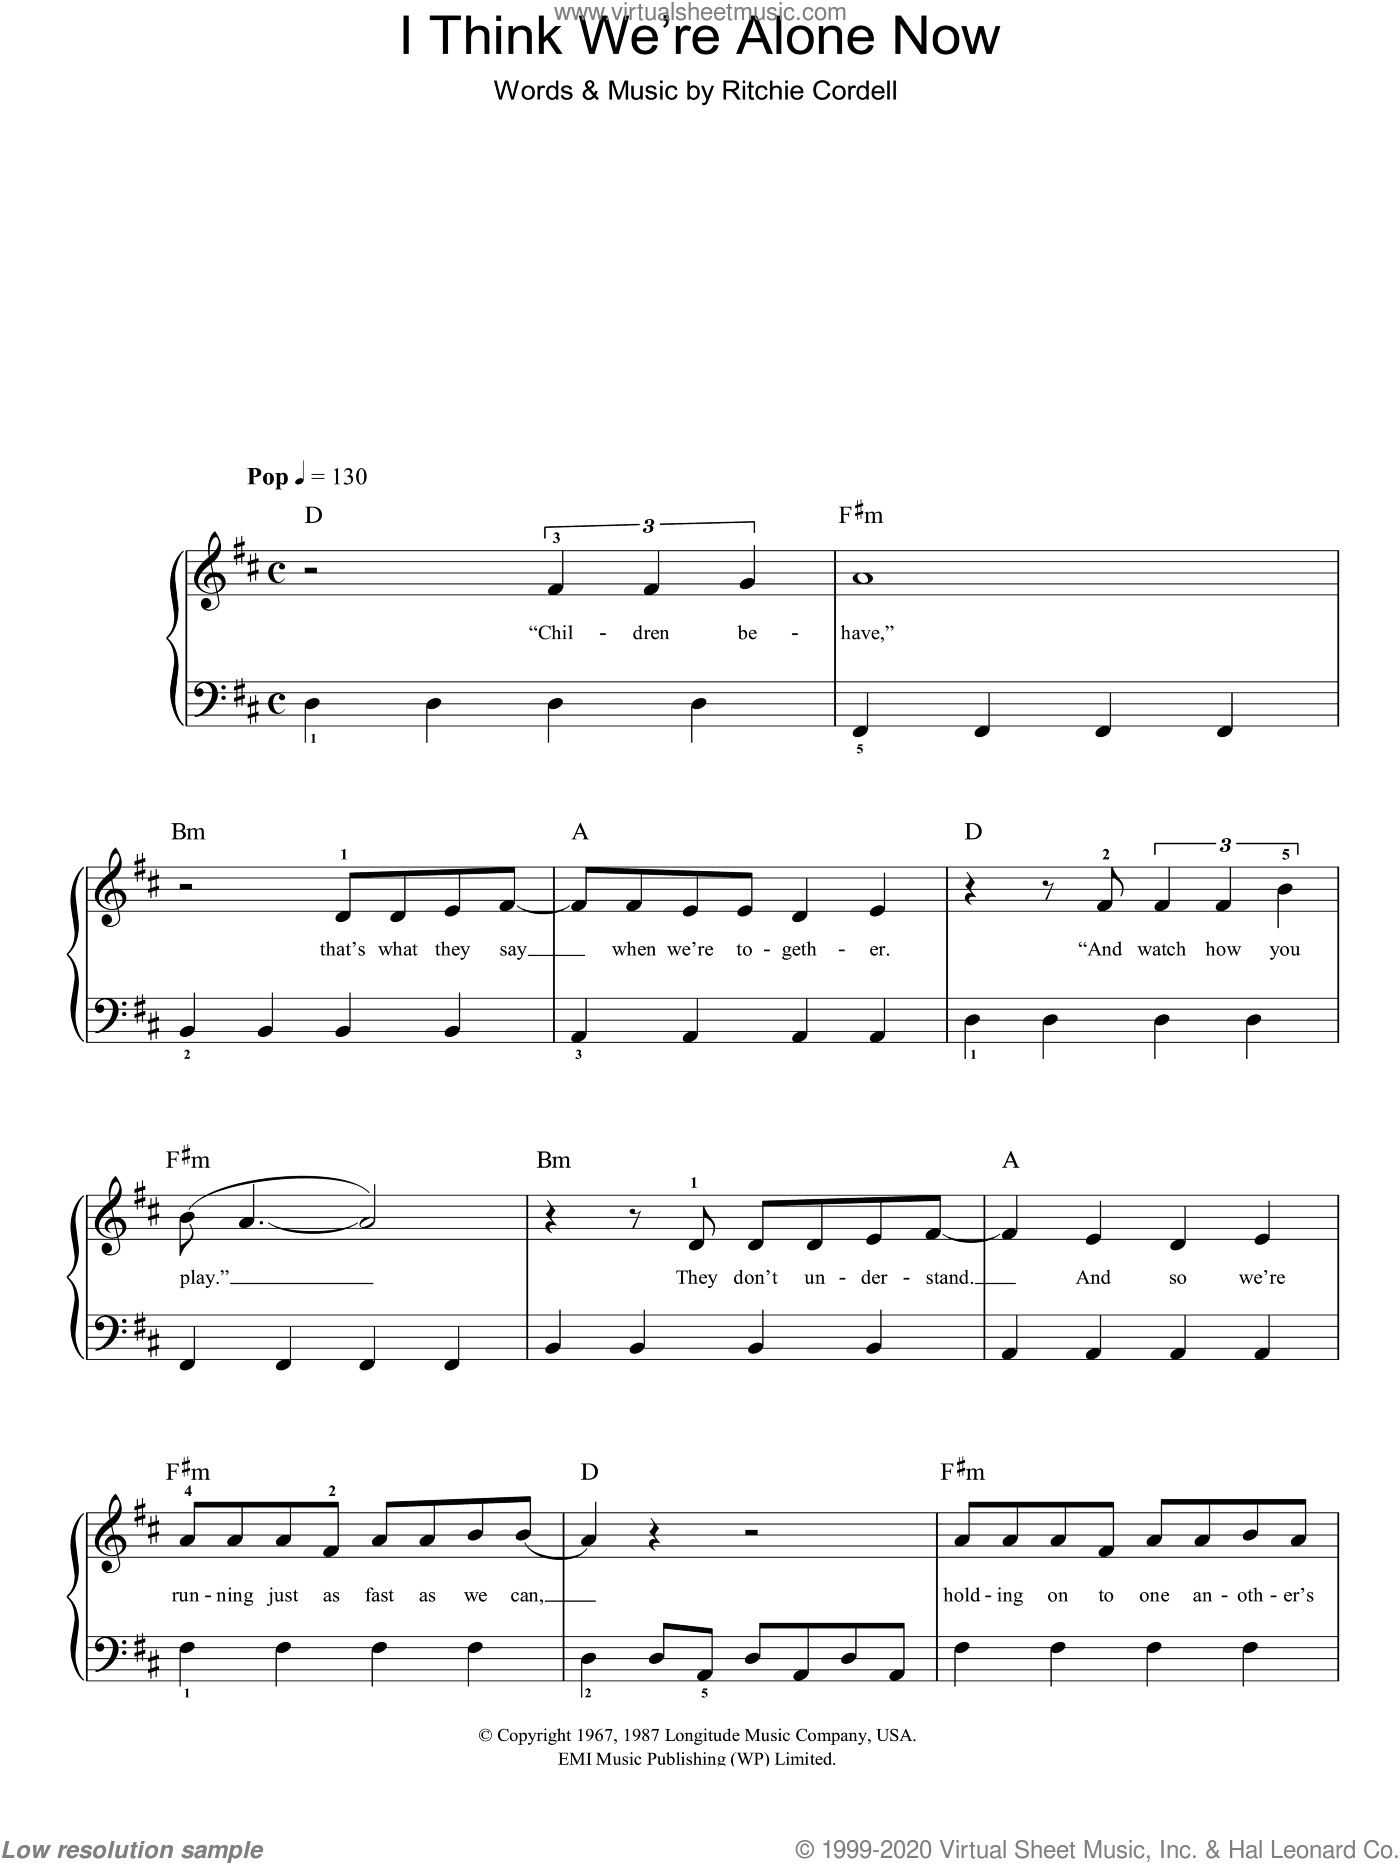 I Think We're Alone Now sheet music for piano solo (chords) by Ritchie Cordell